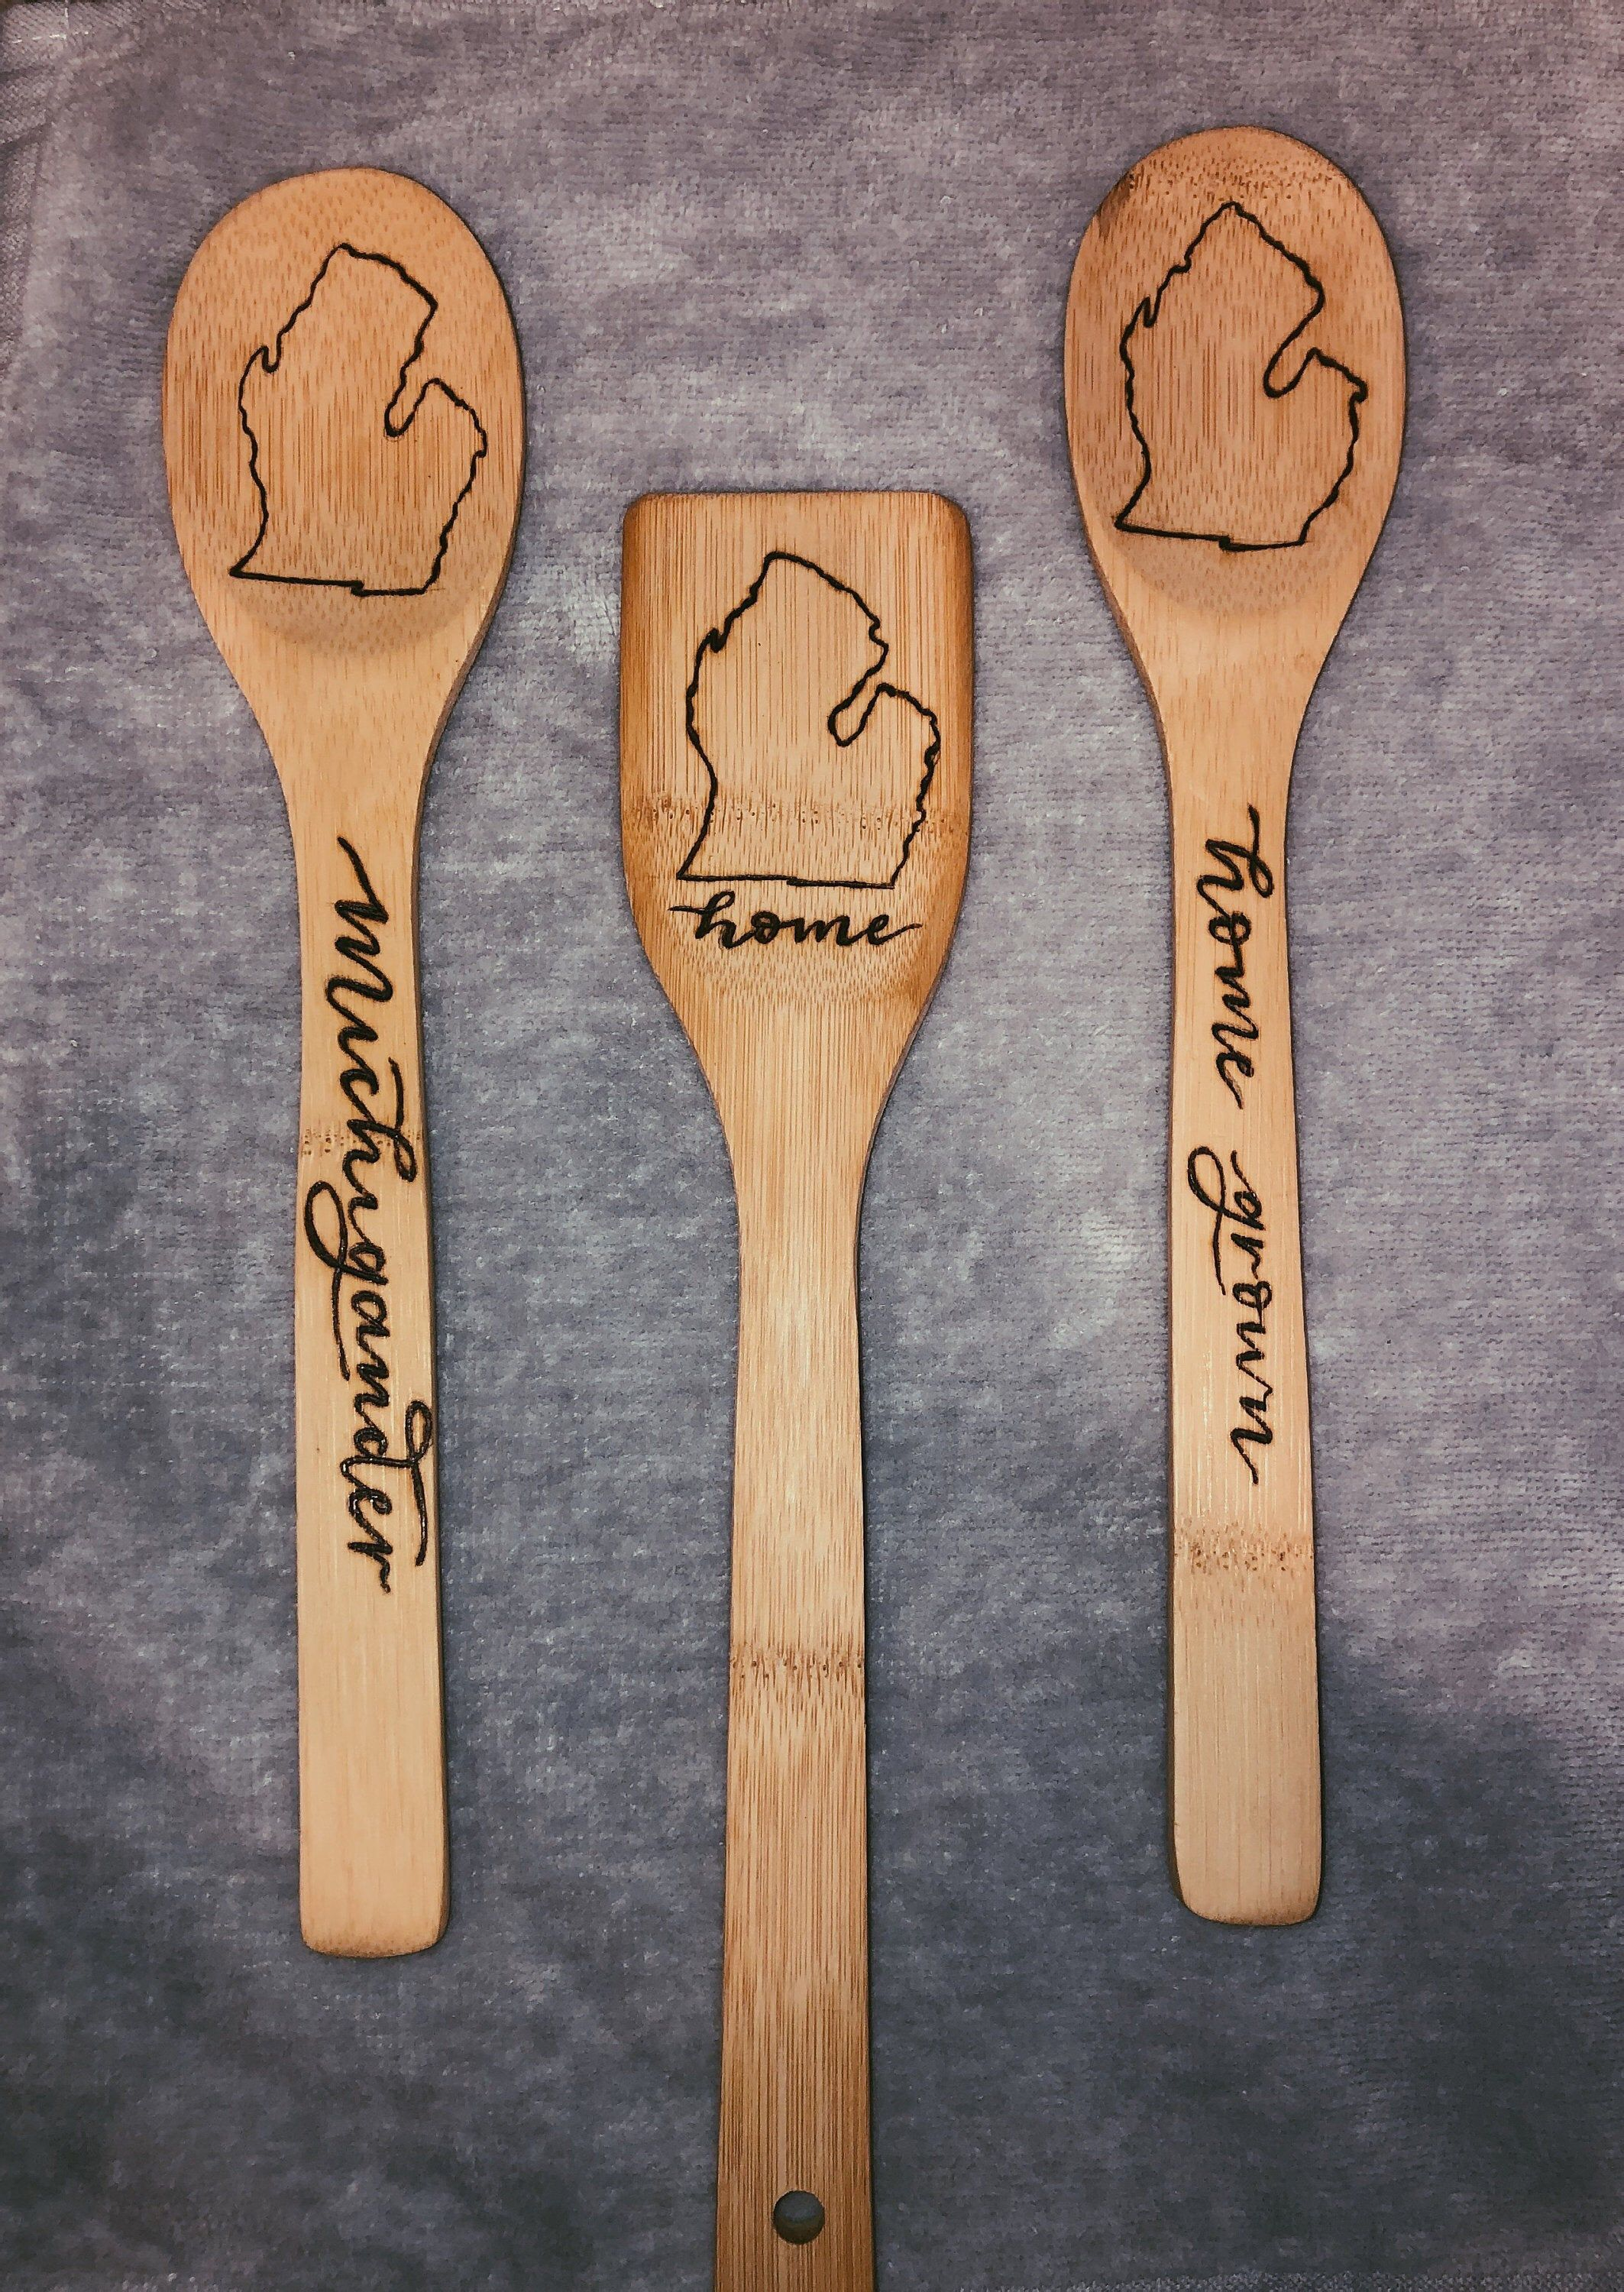 Wood Burned Michigan Spoons, Michigan Kitchen Ware, Michigan Spoons